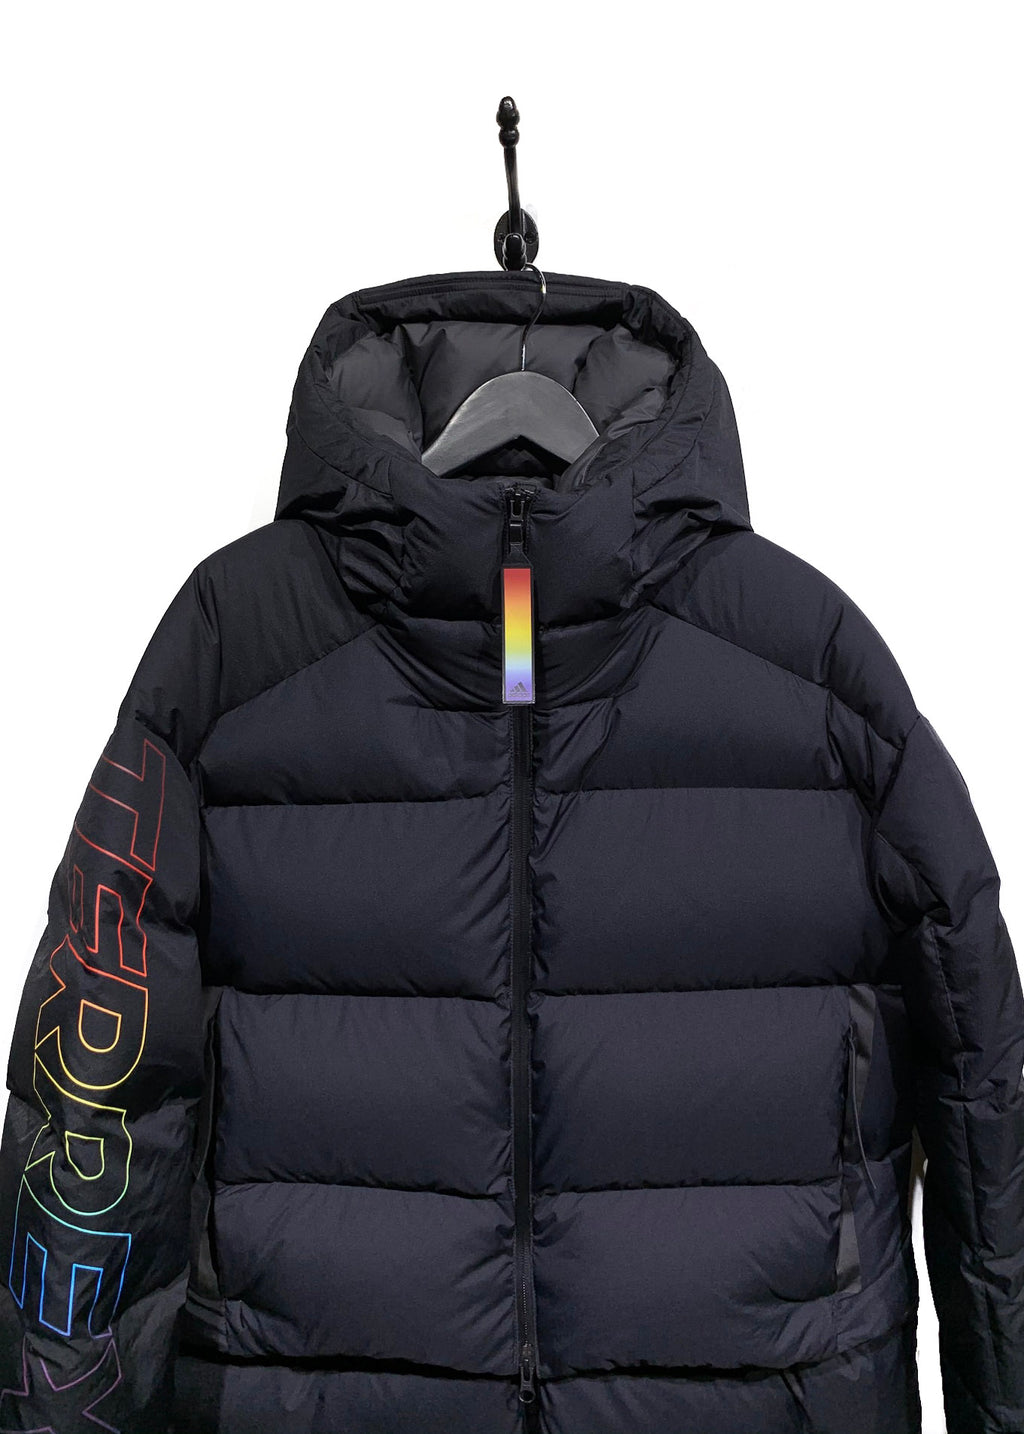 Adidas Kith Terrex Multicolour Detailed Convertible Bomber Jacket